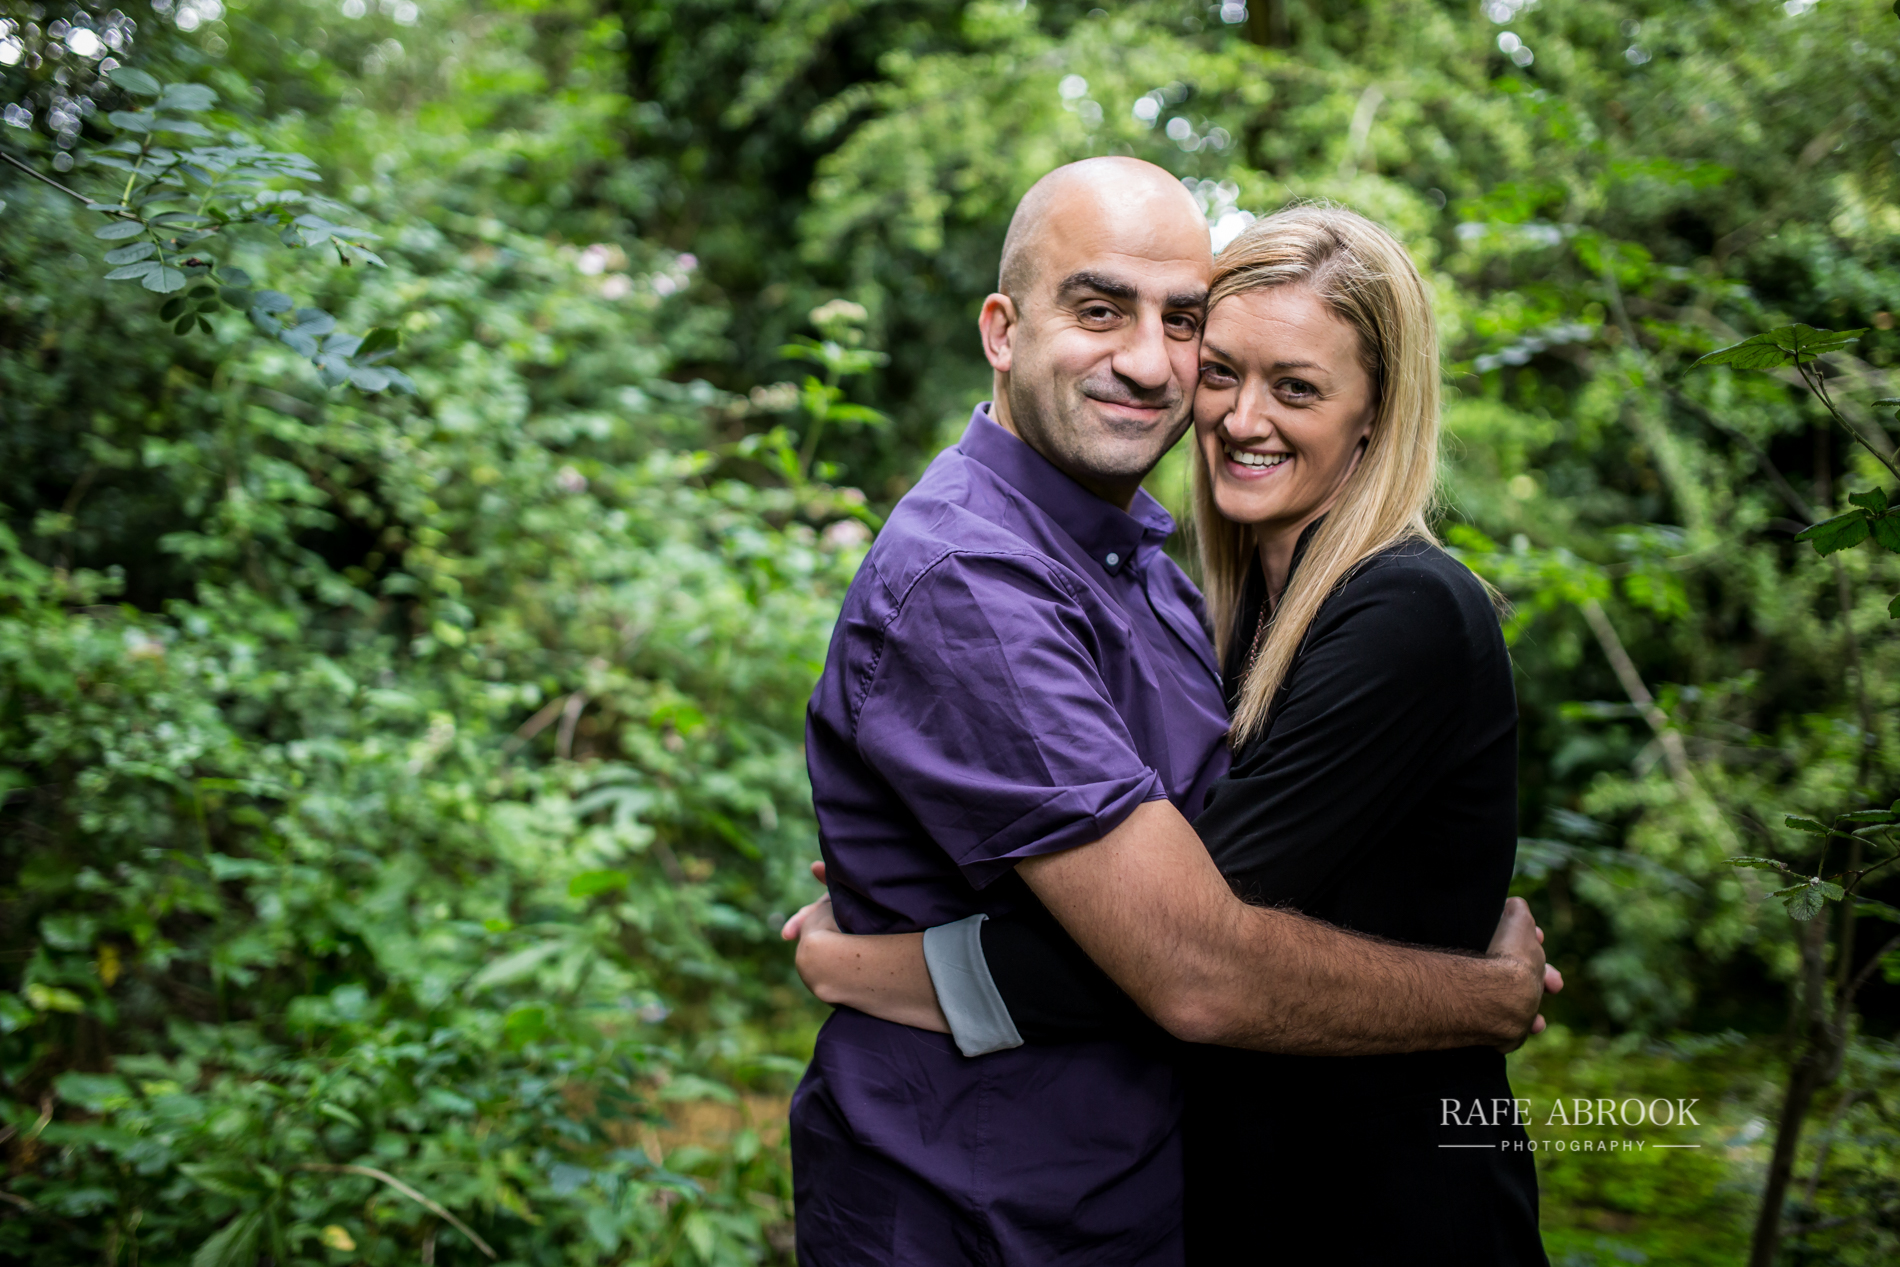 abigail & onur engagement shoot oughtonhead common hitchin hertfordshire-1026.jpg